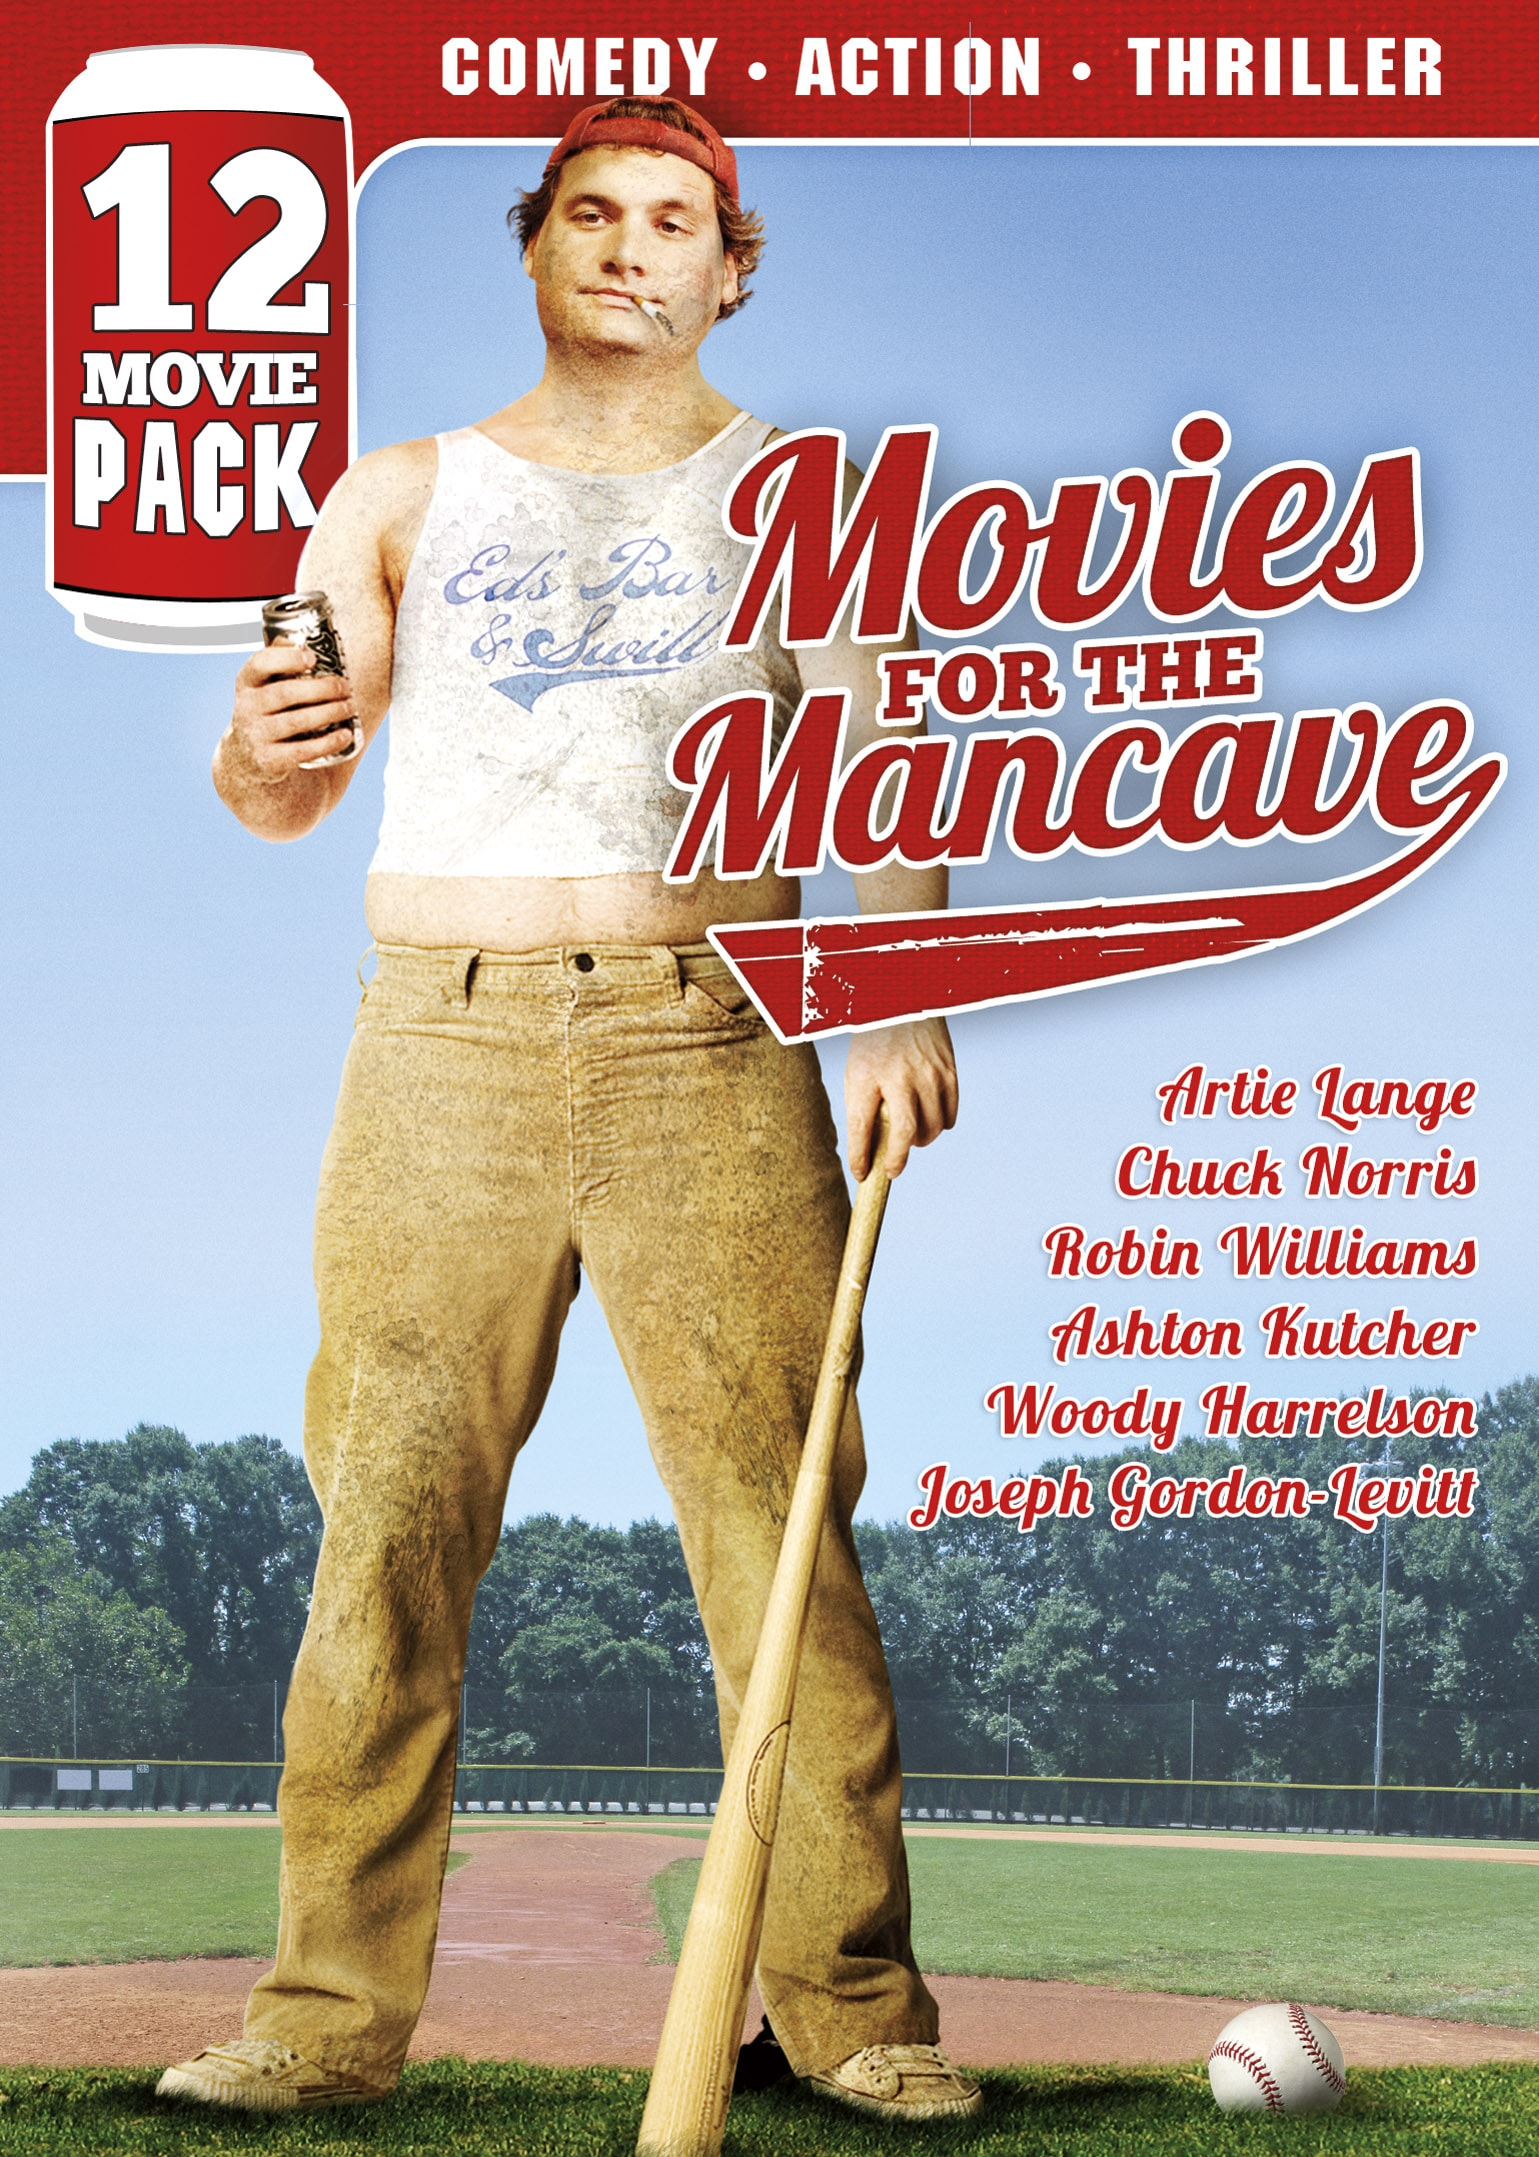 12 Movies for the Man Cave